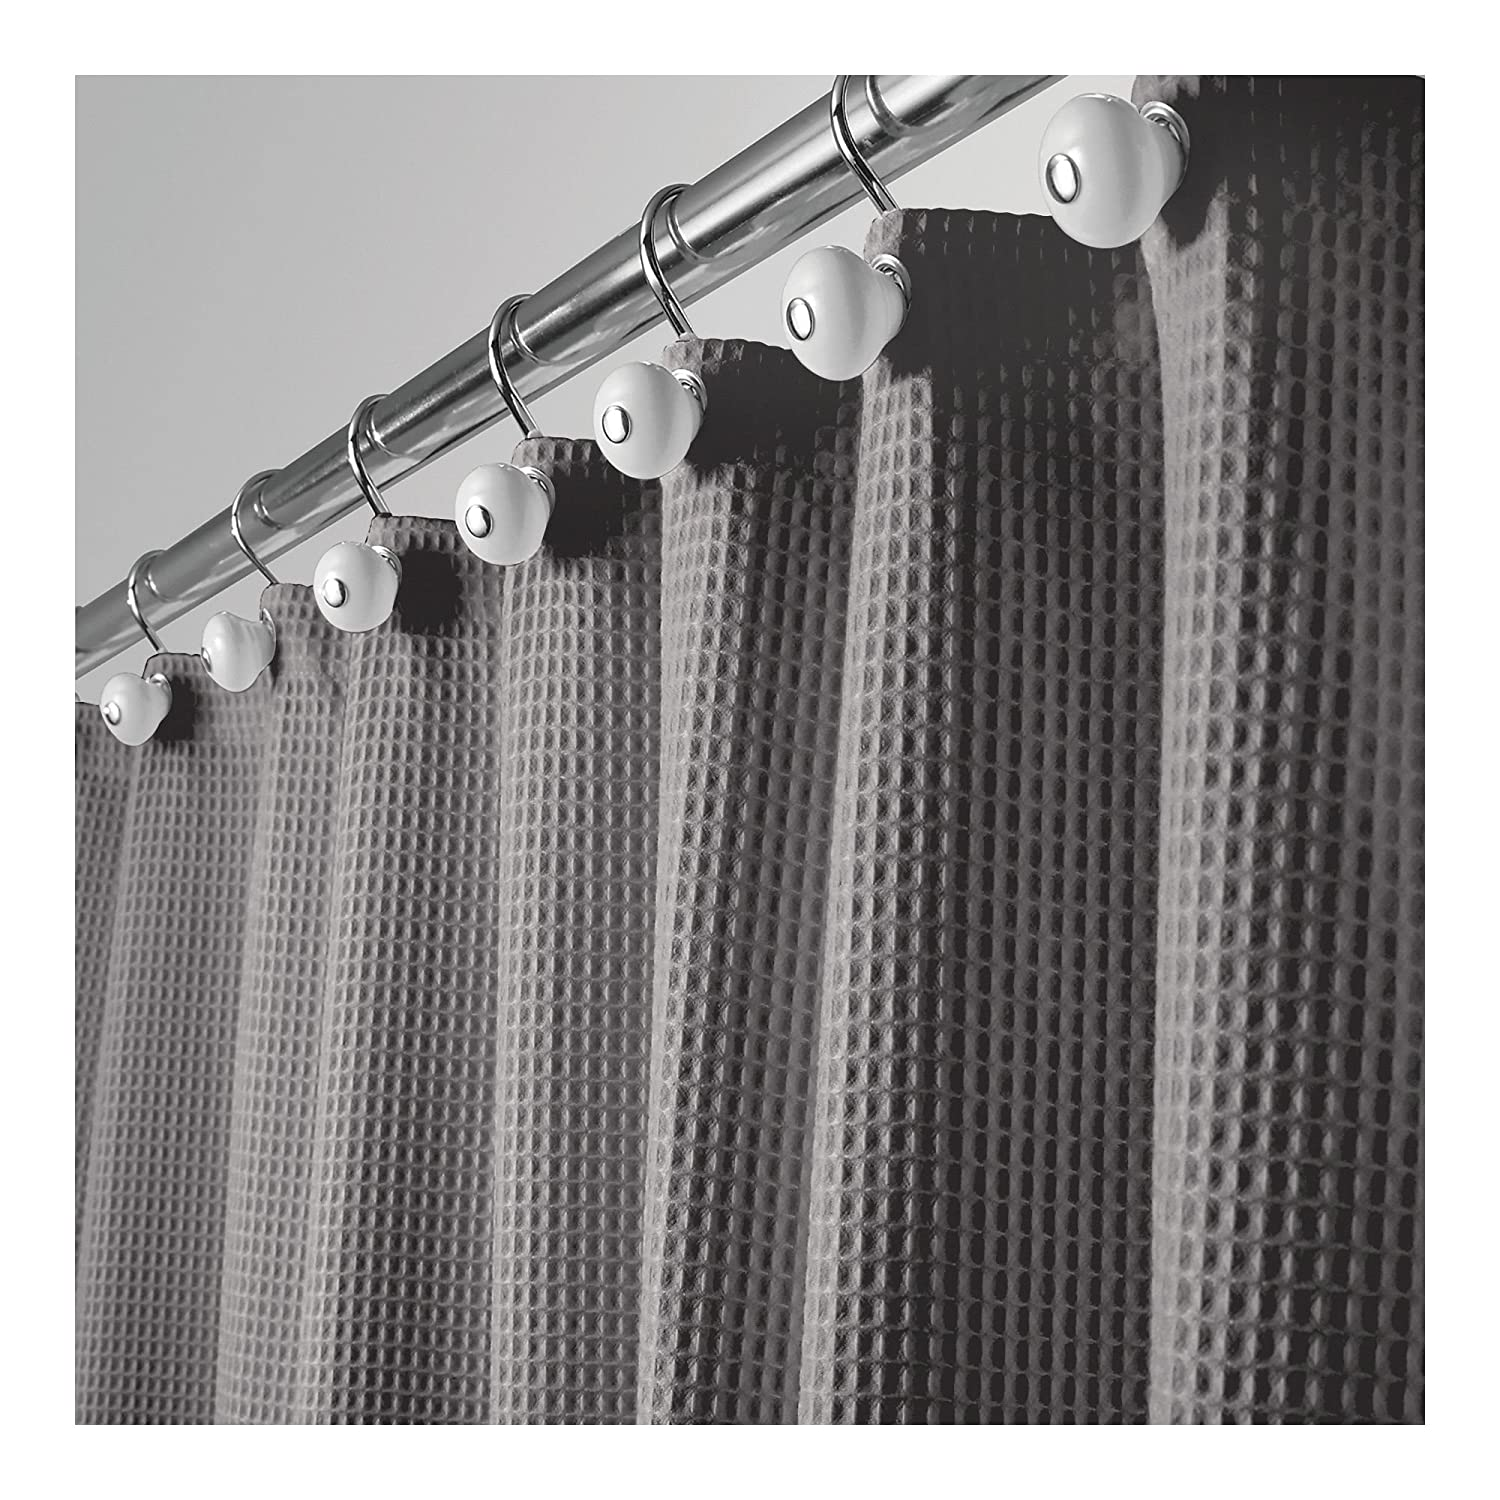 mDesign Hotel Quality Polyester/Cotton Blend Fabric Shower Curtain, Rustproof Metal Grommets - Waffle Weave for Bathroom Showers and Bathtubs, Easy Care - 72